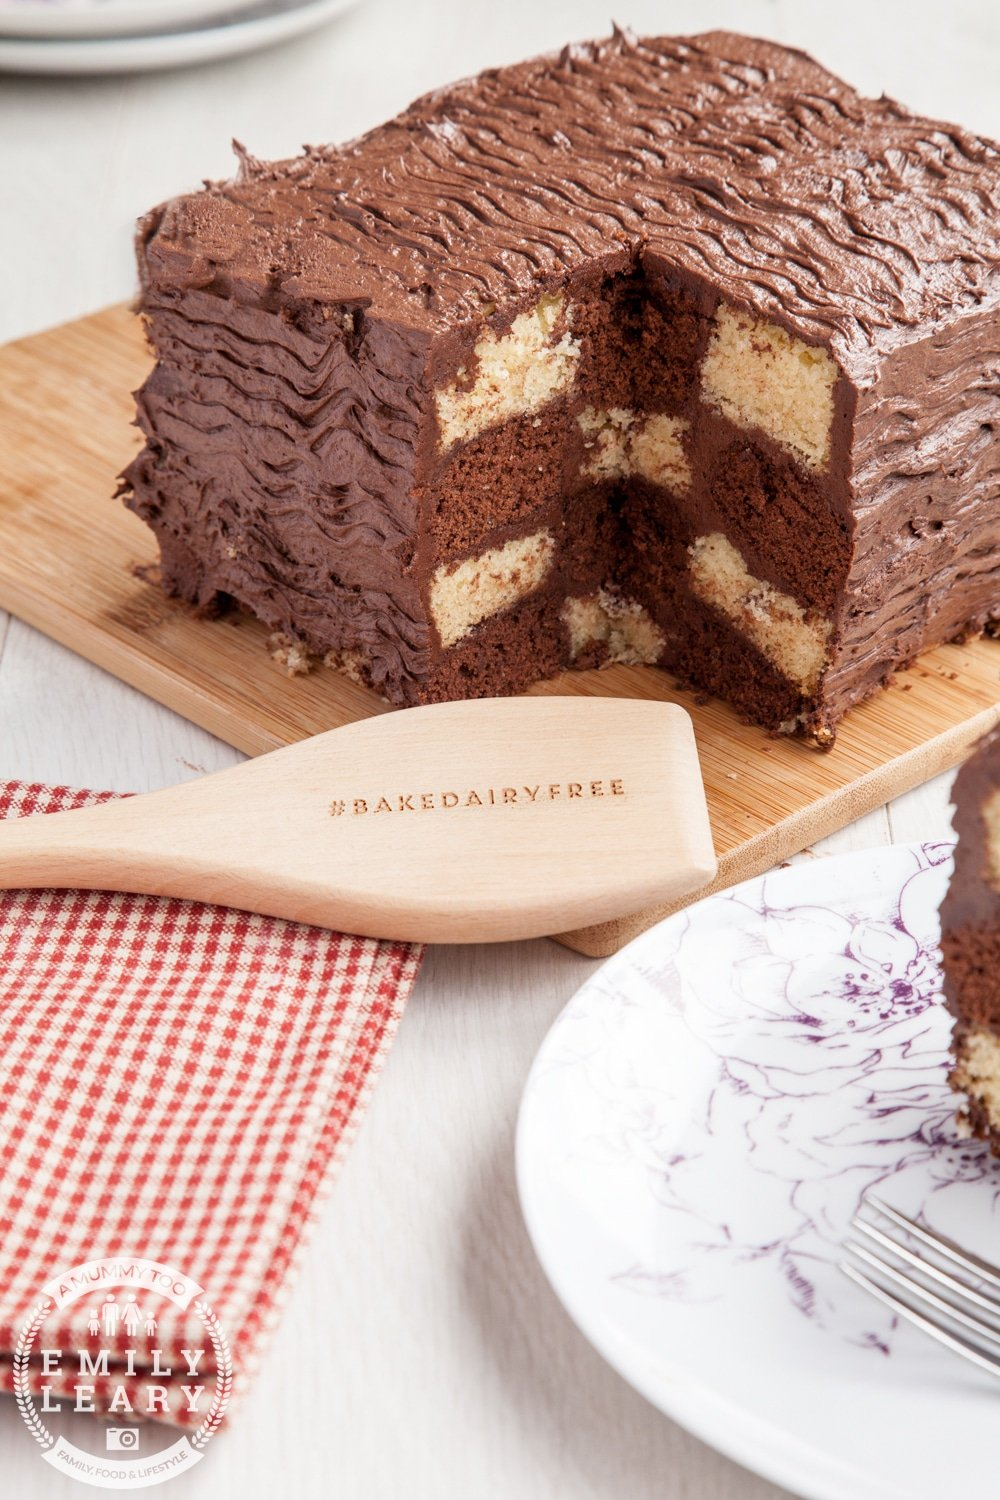 Bake this delicious dairy-free, gluten-free chocolate and vanilla chequerboard cake at home